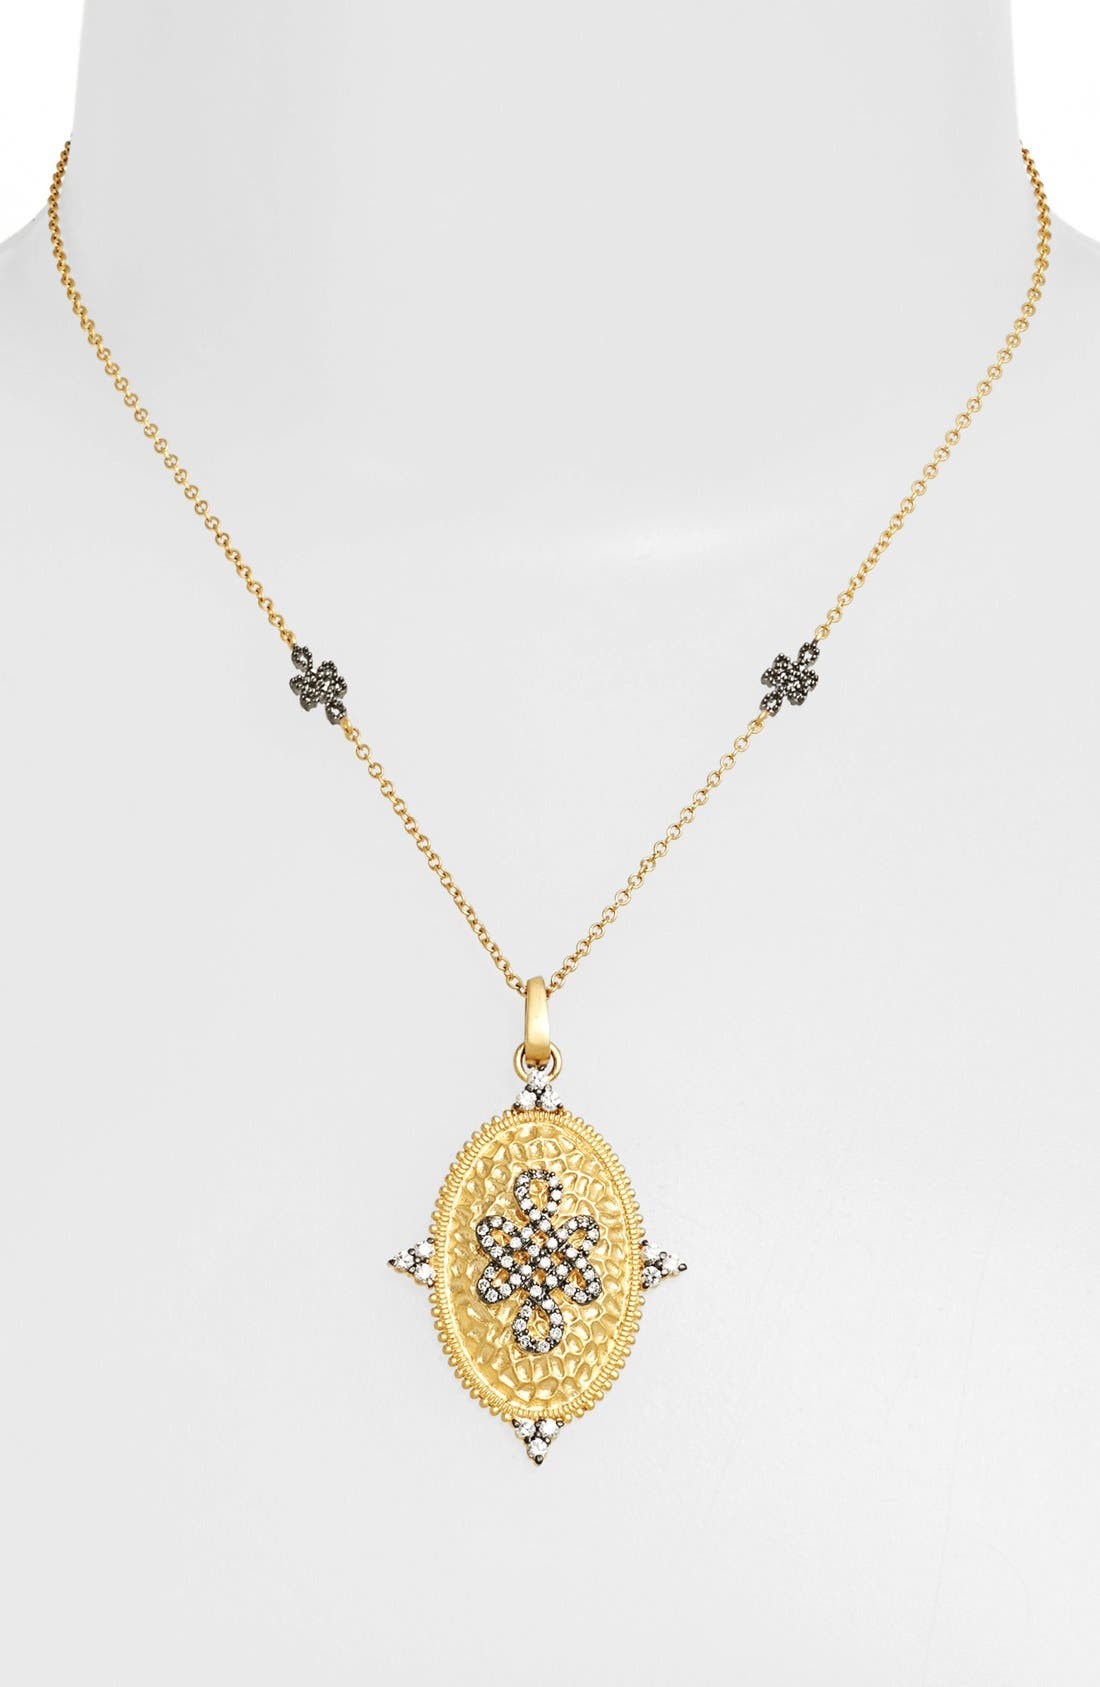 Main Image - FREIDA ROTHMAN 'Gramercy' Love Knot Shield Pendant Necklace